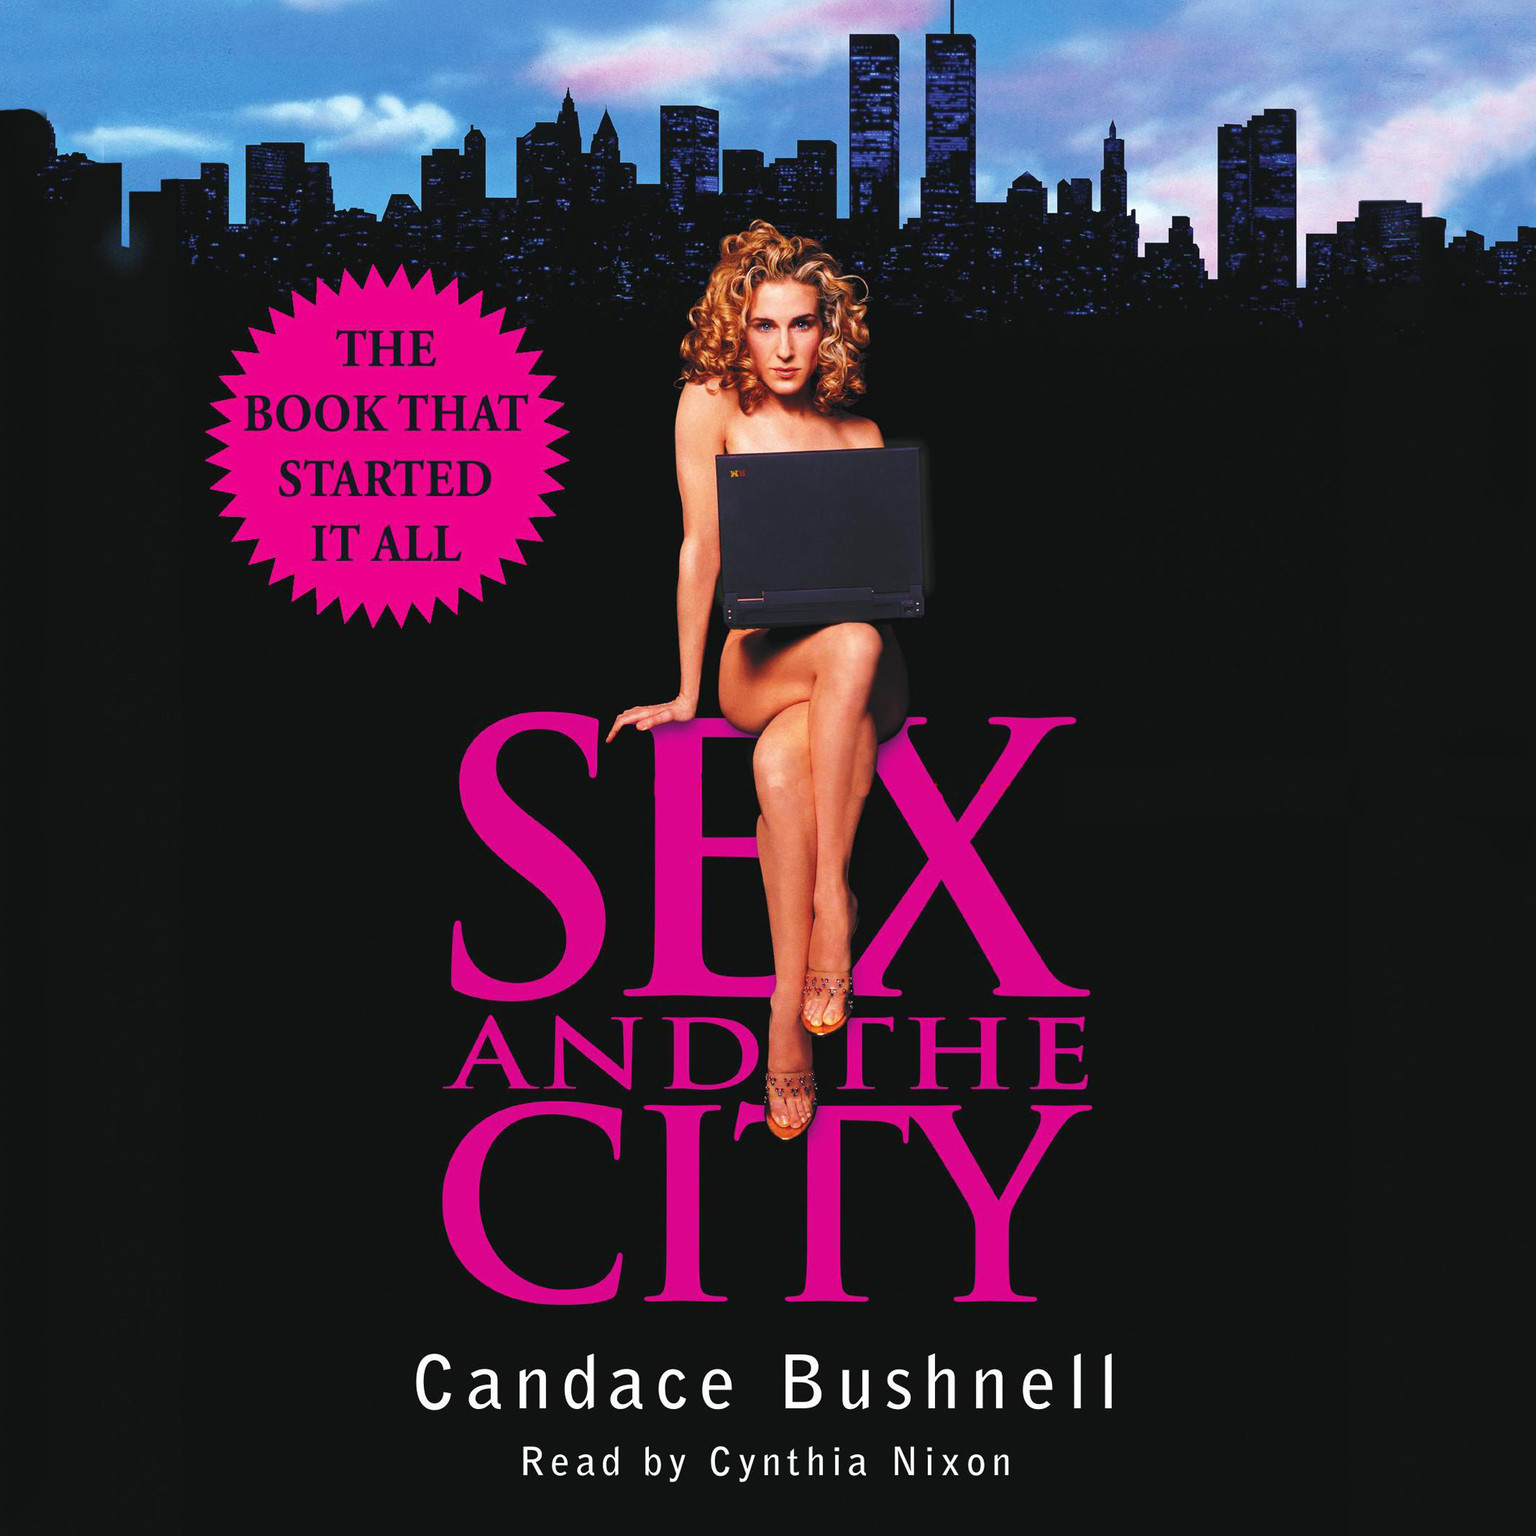 Sex and the city movie advert